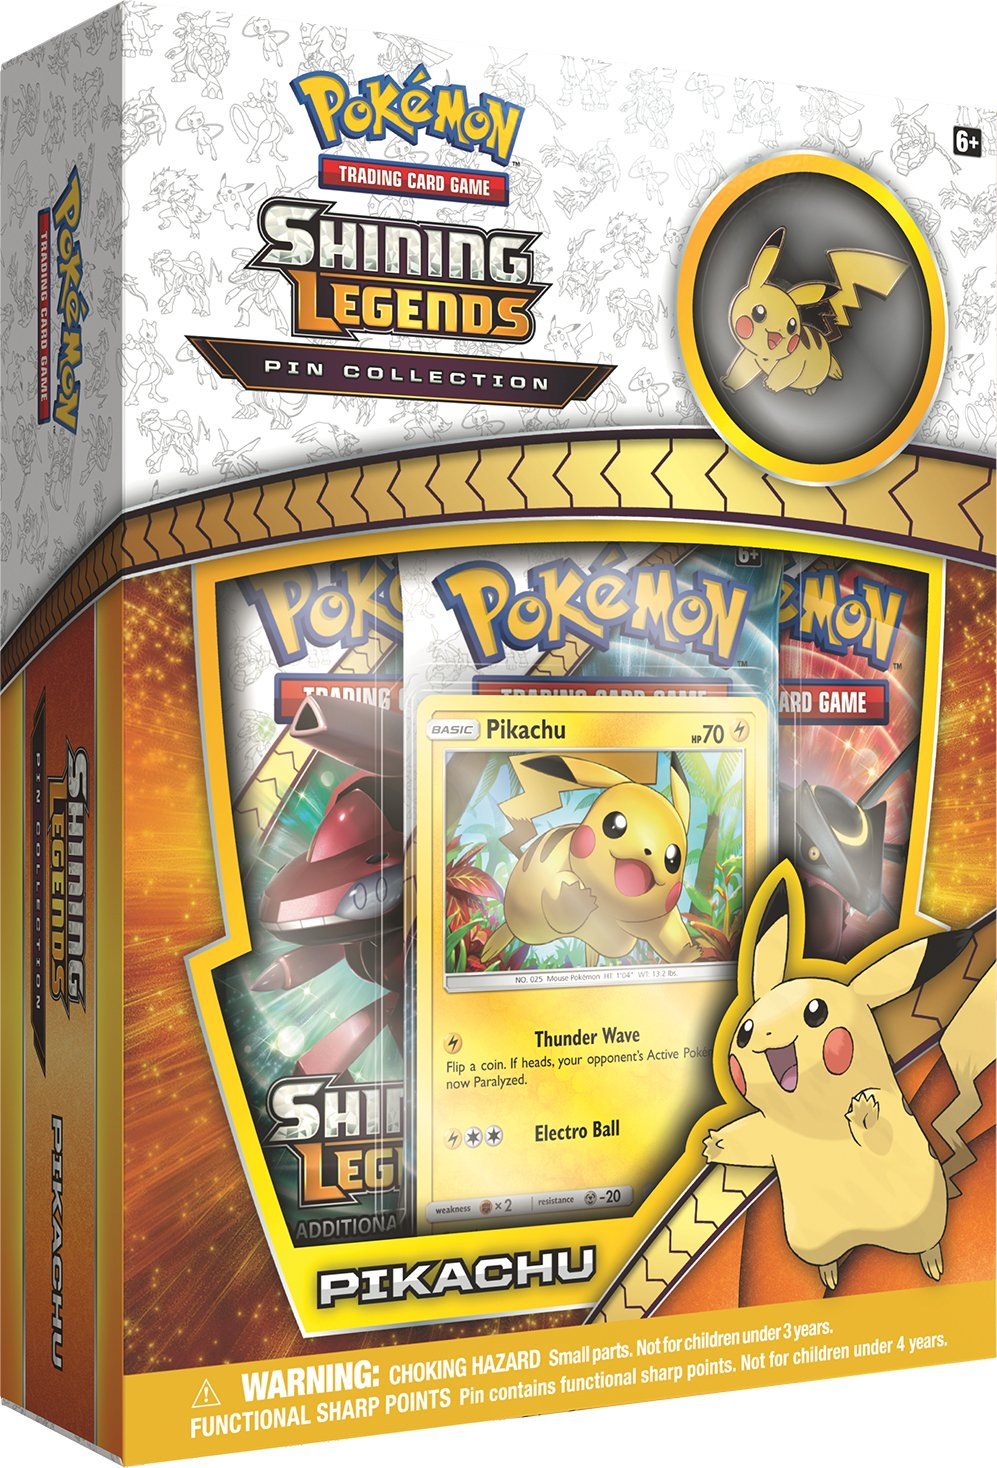 Pokemon TCG: Pikachu Shining Legends Pin Collection | Includes Playable Pikachu Promo Foil & Collector's Pikachu Pin | Plus 3 Shining Legends Expansion Booster Packs | 31 Cards Total